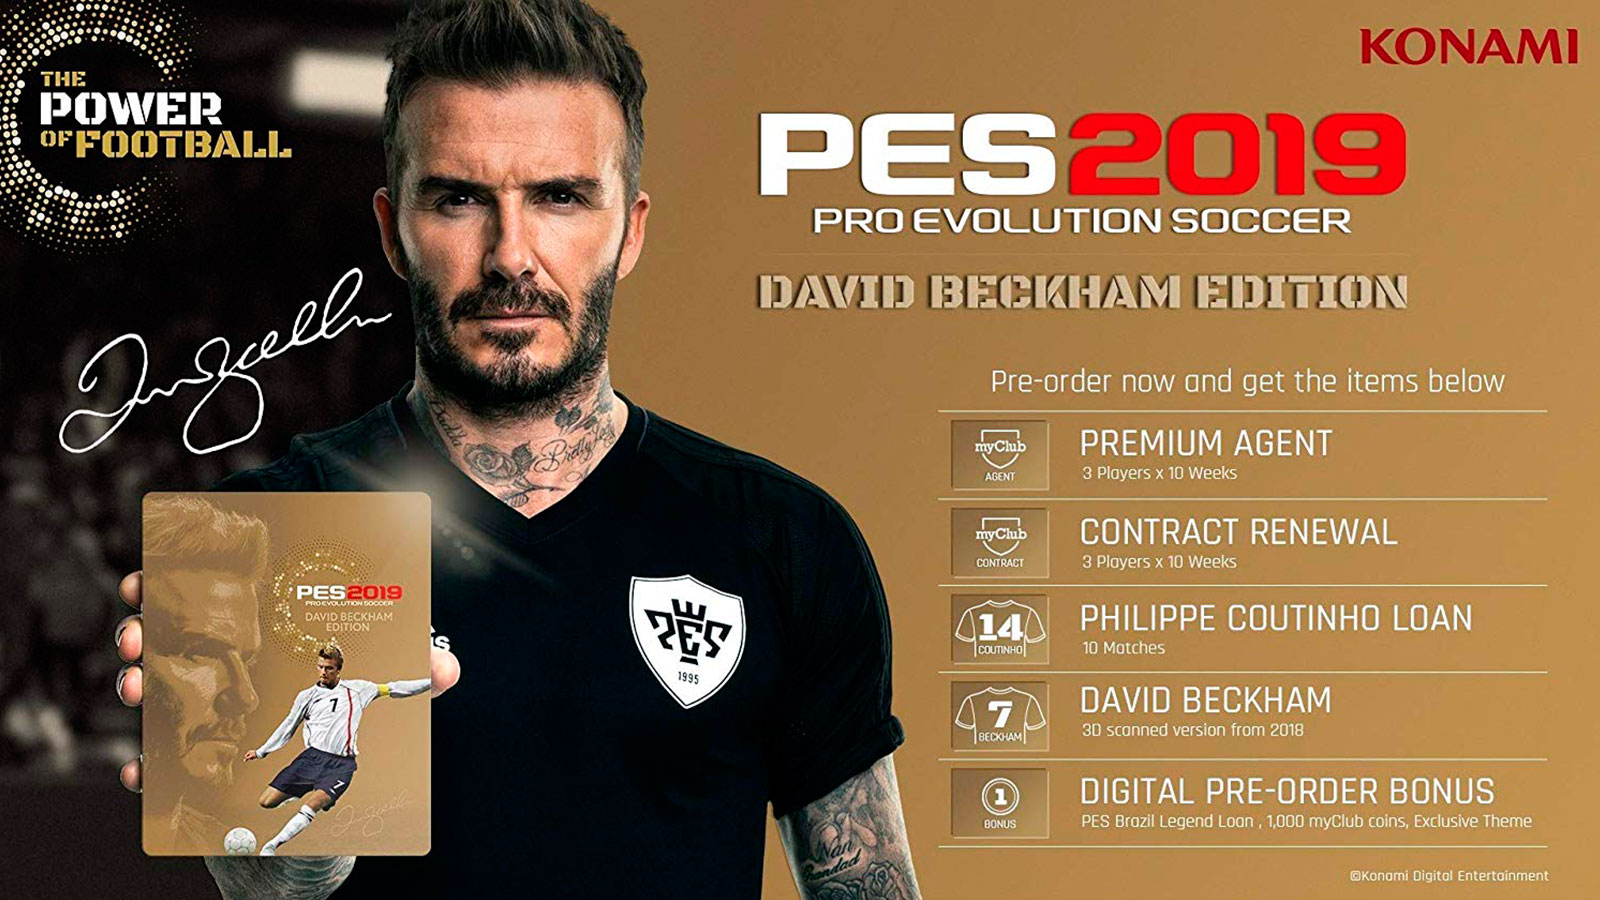 www.microplay.cl/files/uploads/pes-2019-po-evolution-soccer-david-beckh-1.jpg